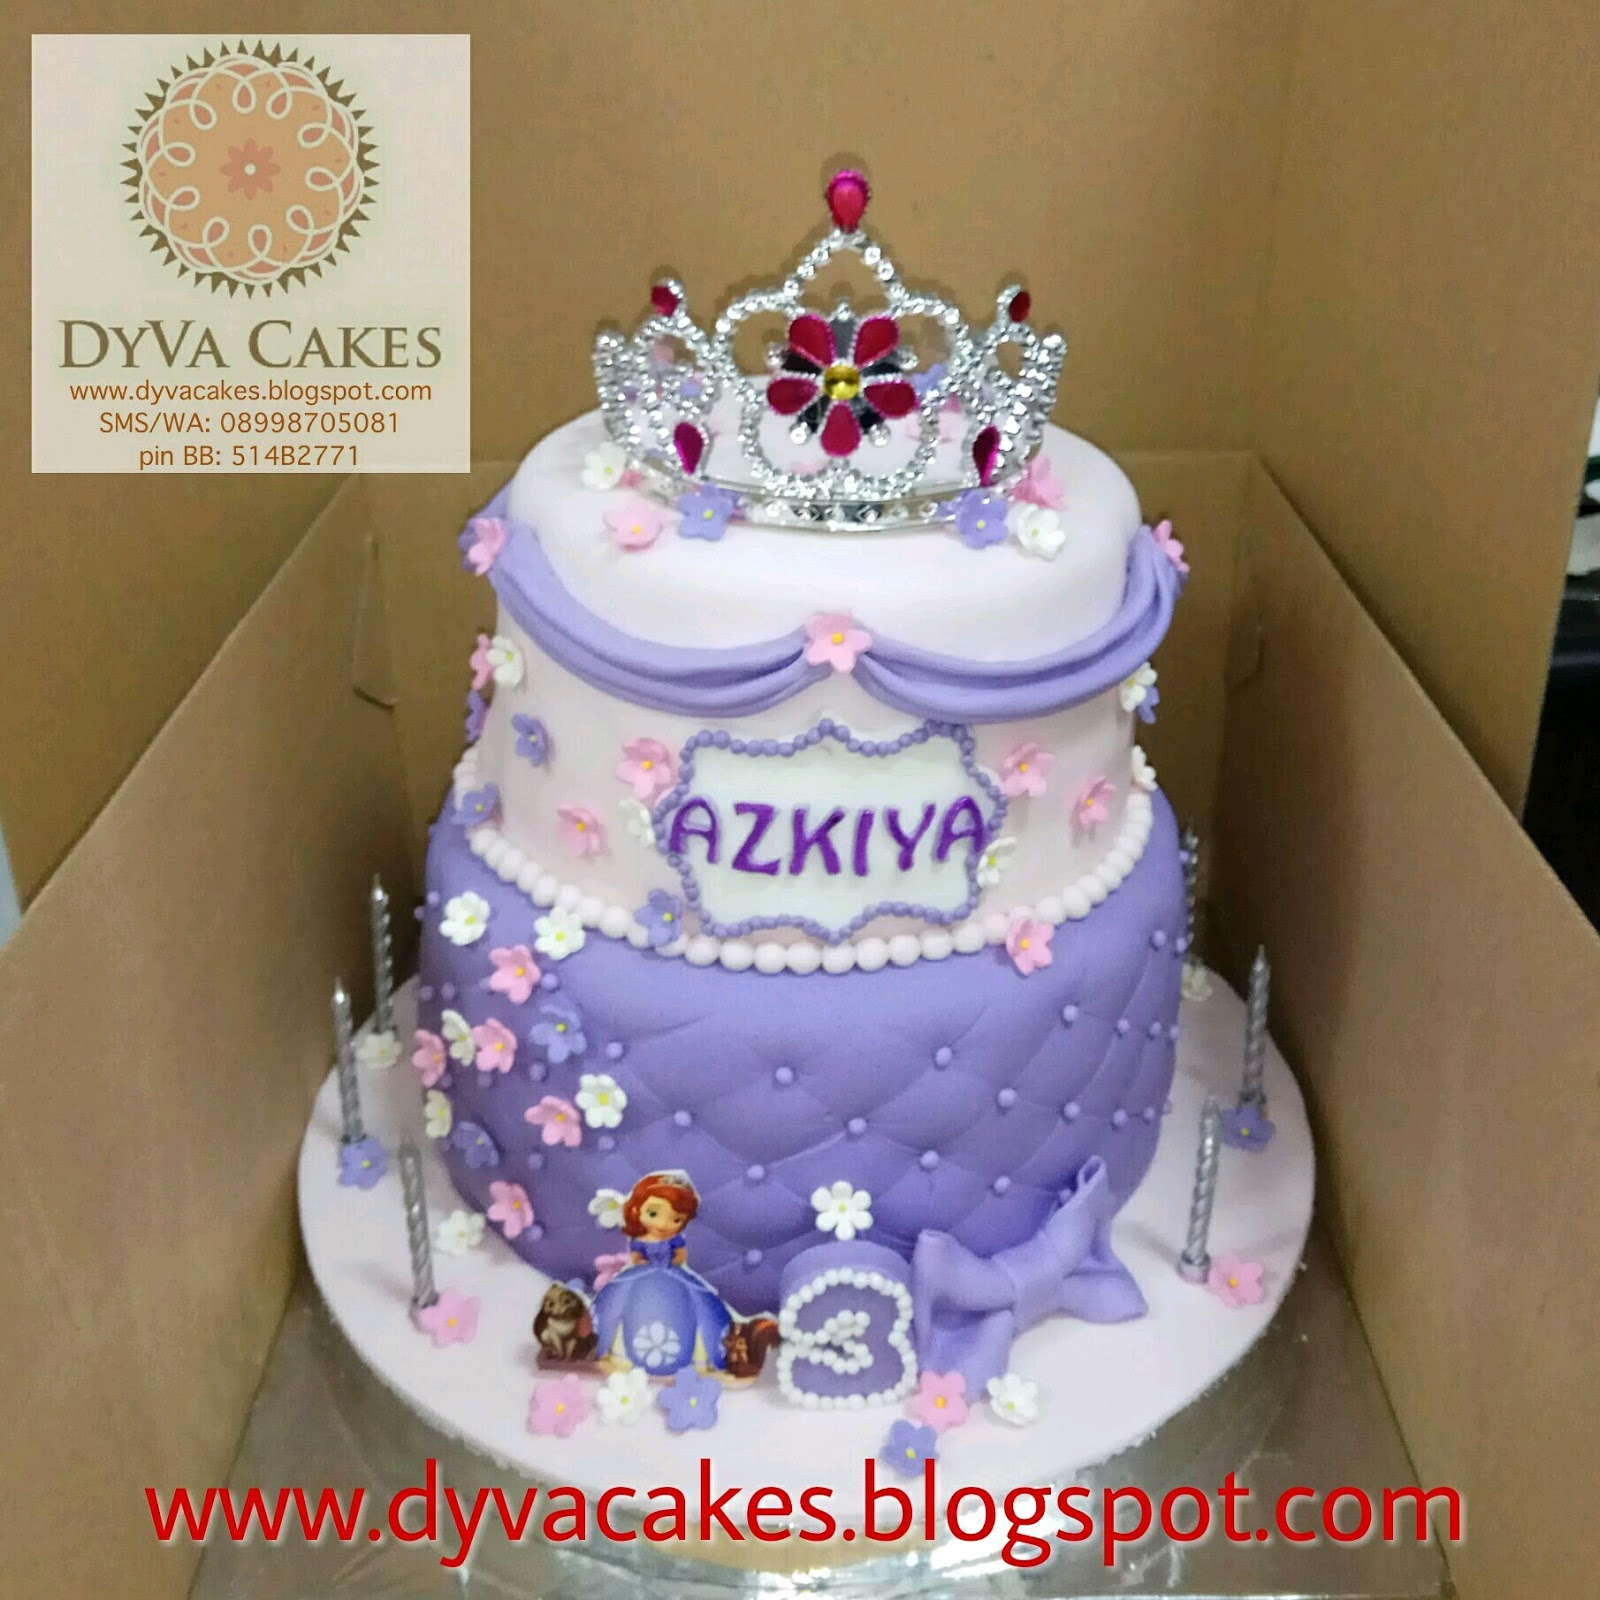 DyVa Cakes Princess Sofia Birthday Cake